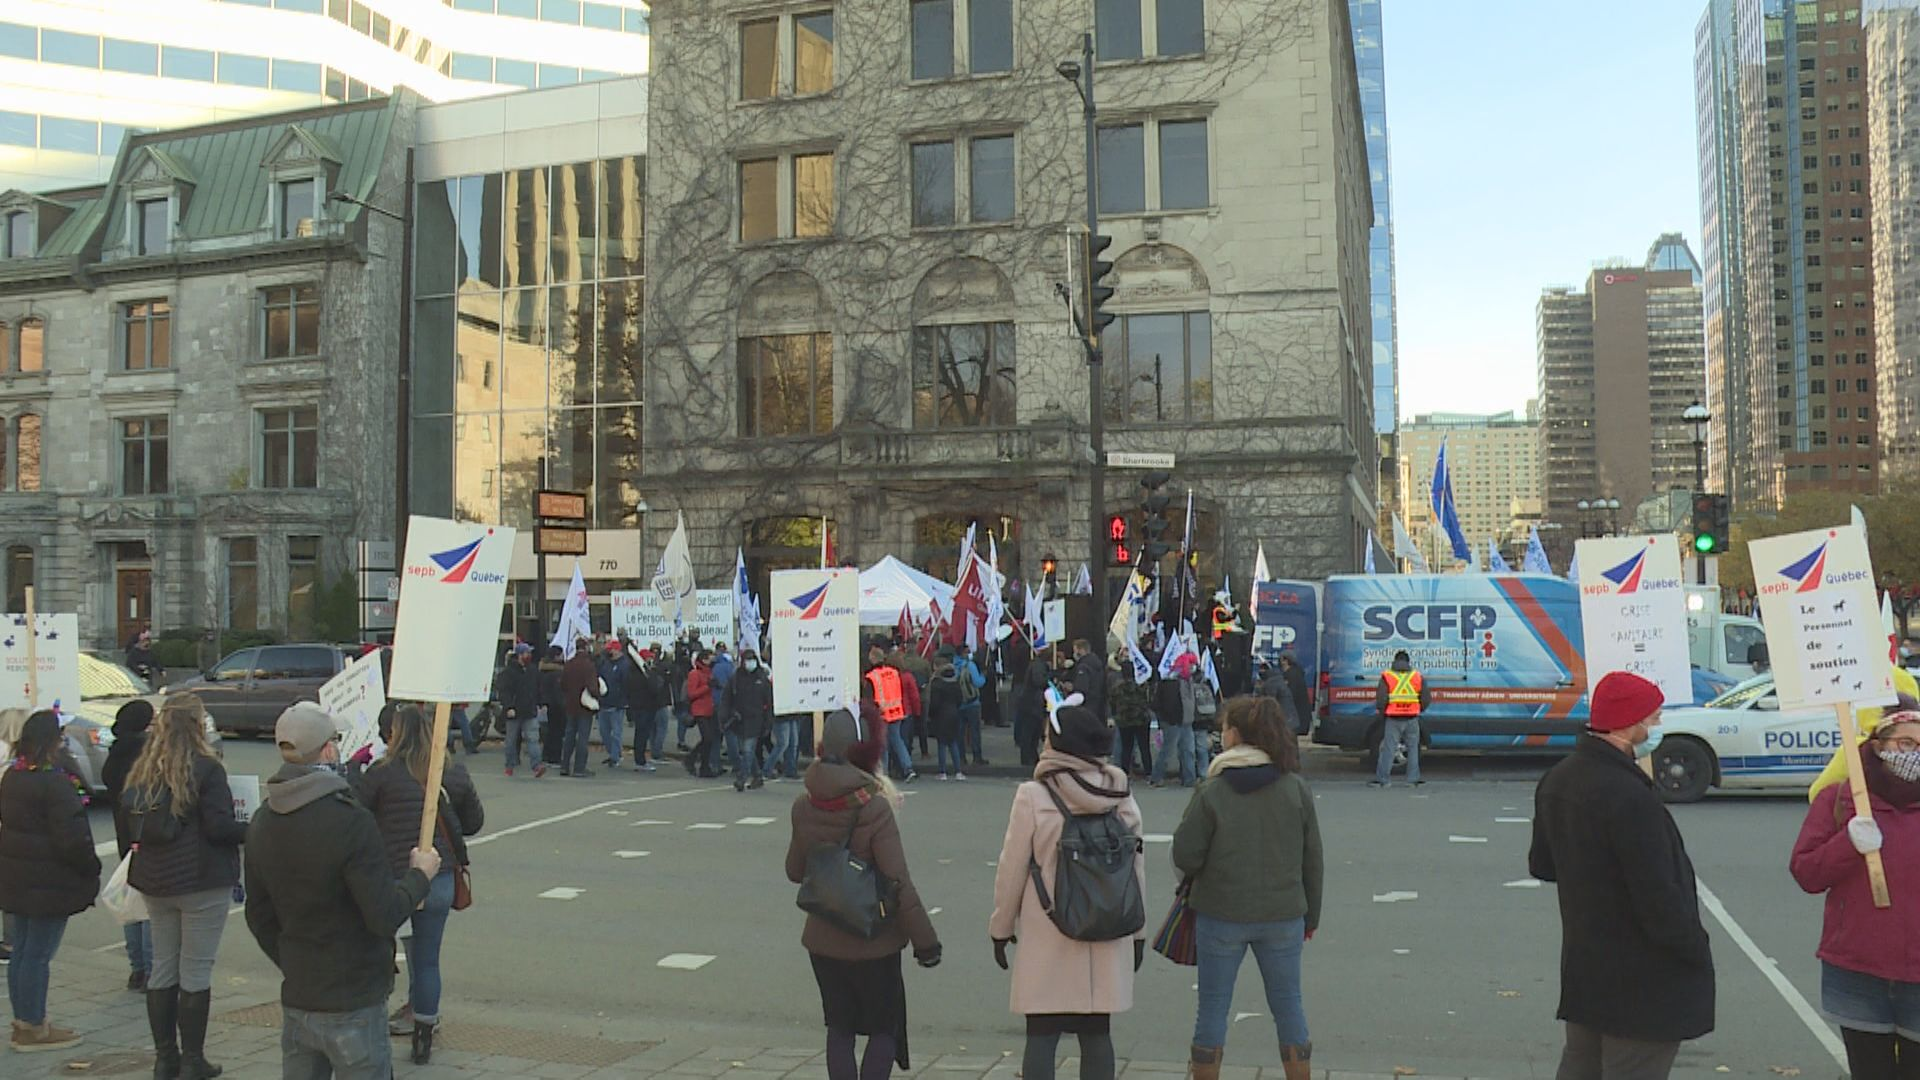 Montreal-area school support staff demonstrate outside Quebec premier's office